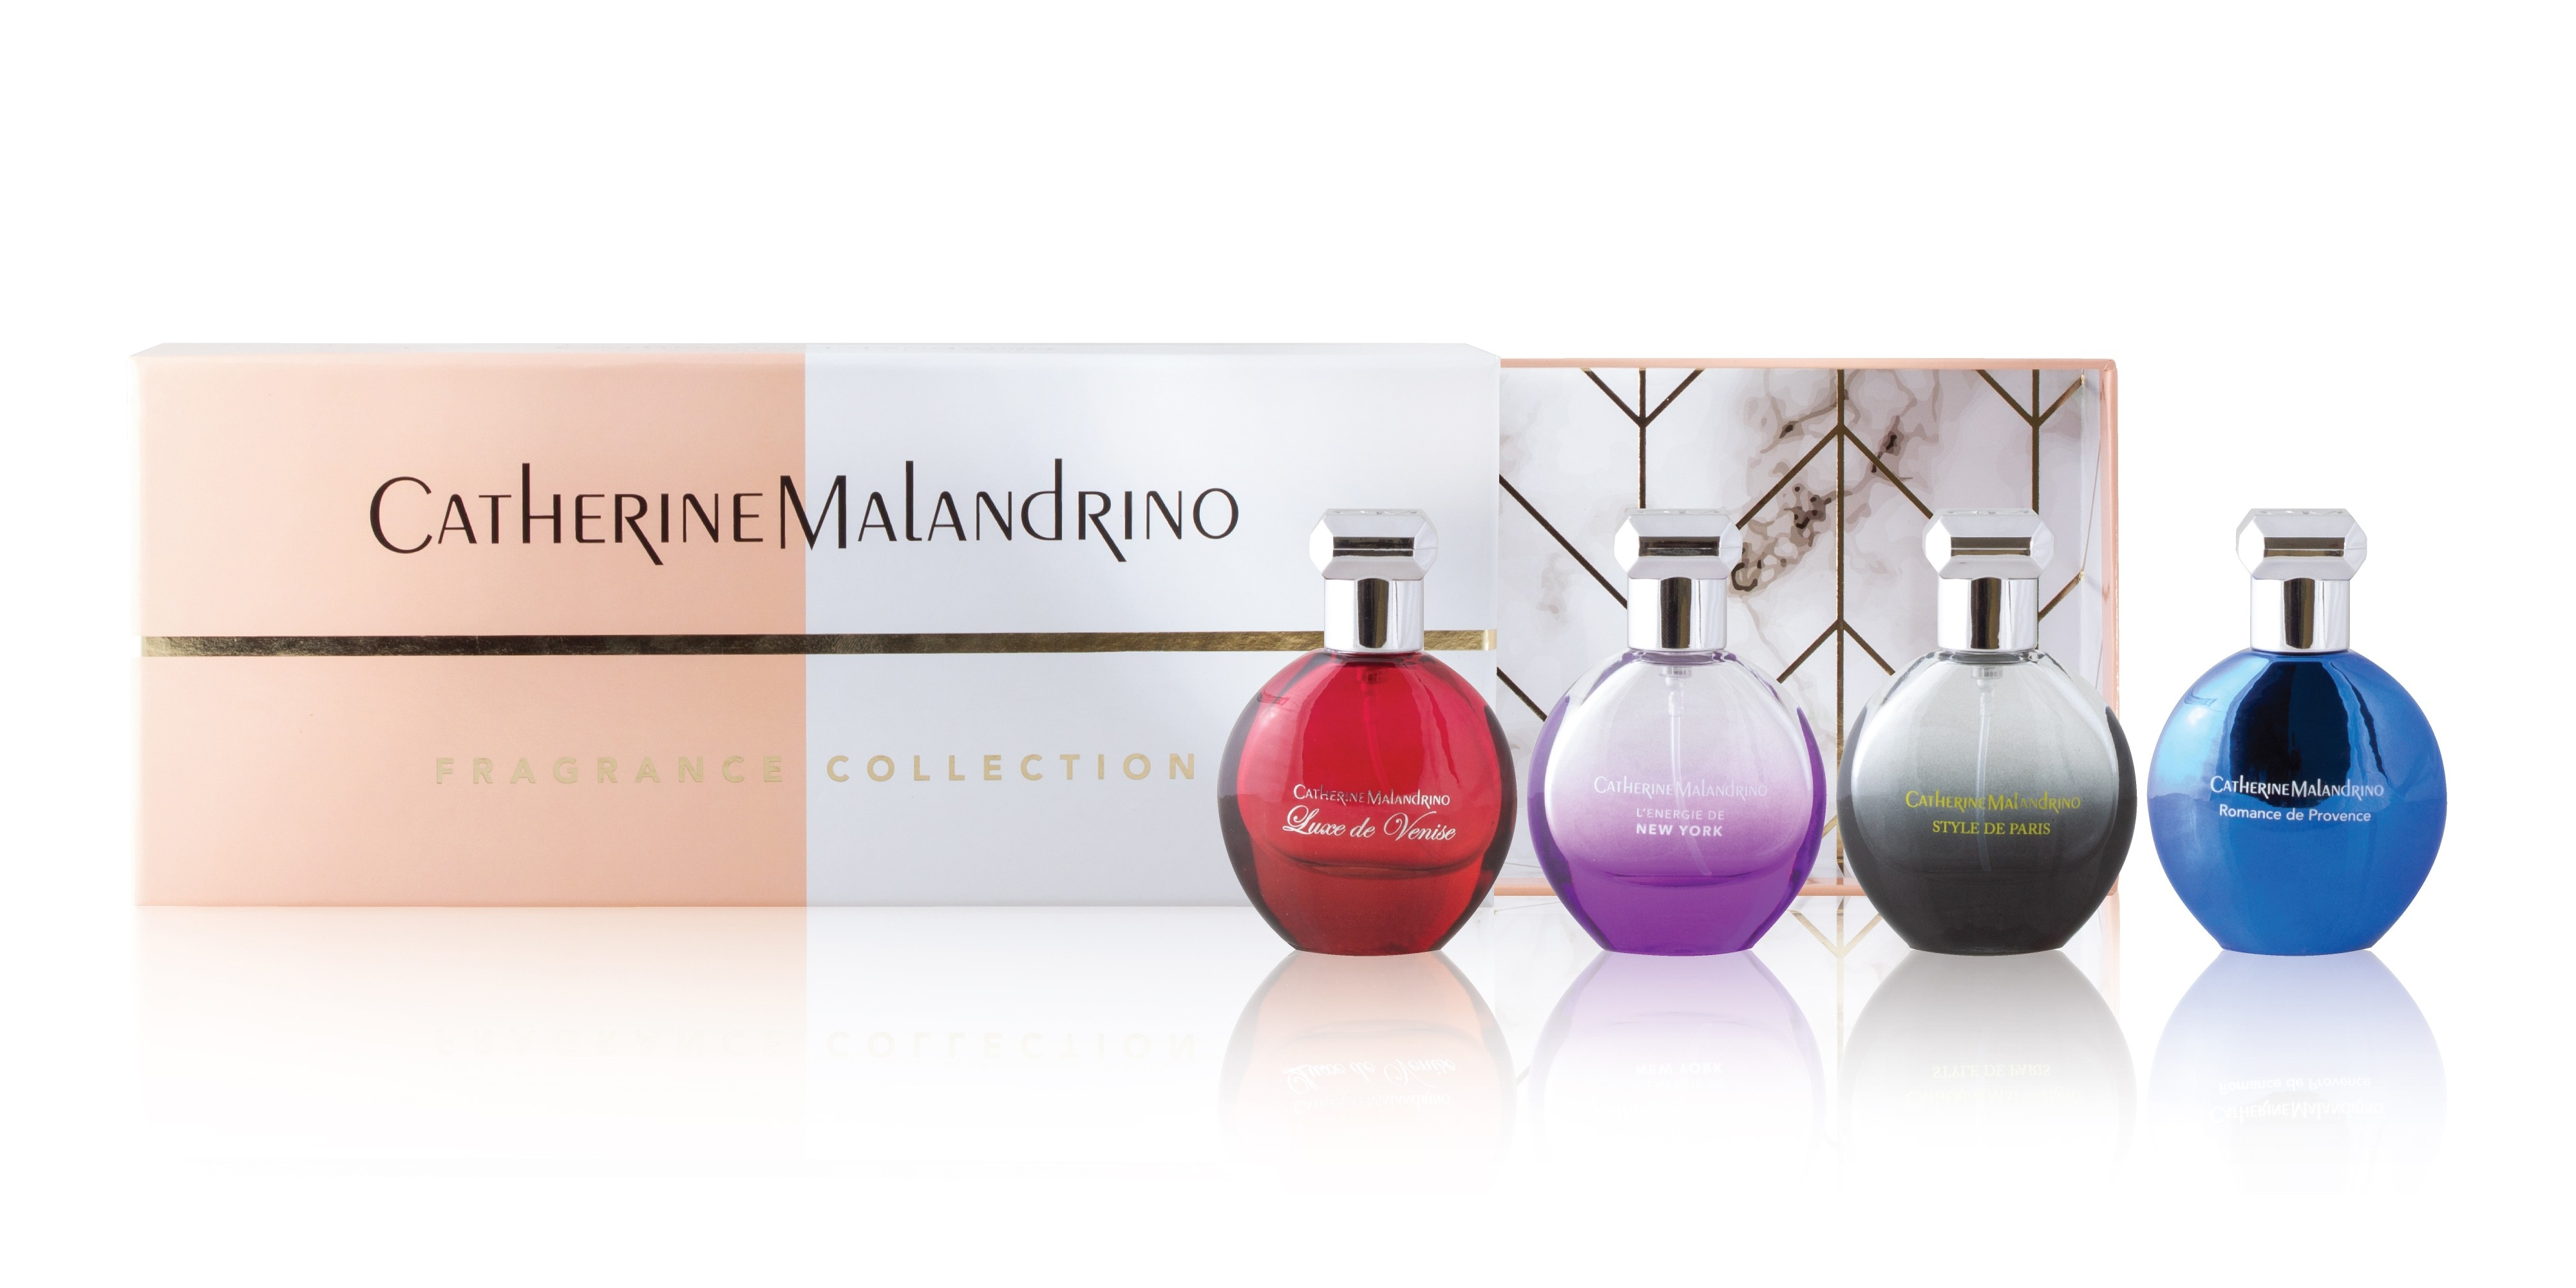 Catherine Malandrino 20ml EDP Coffret